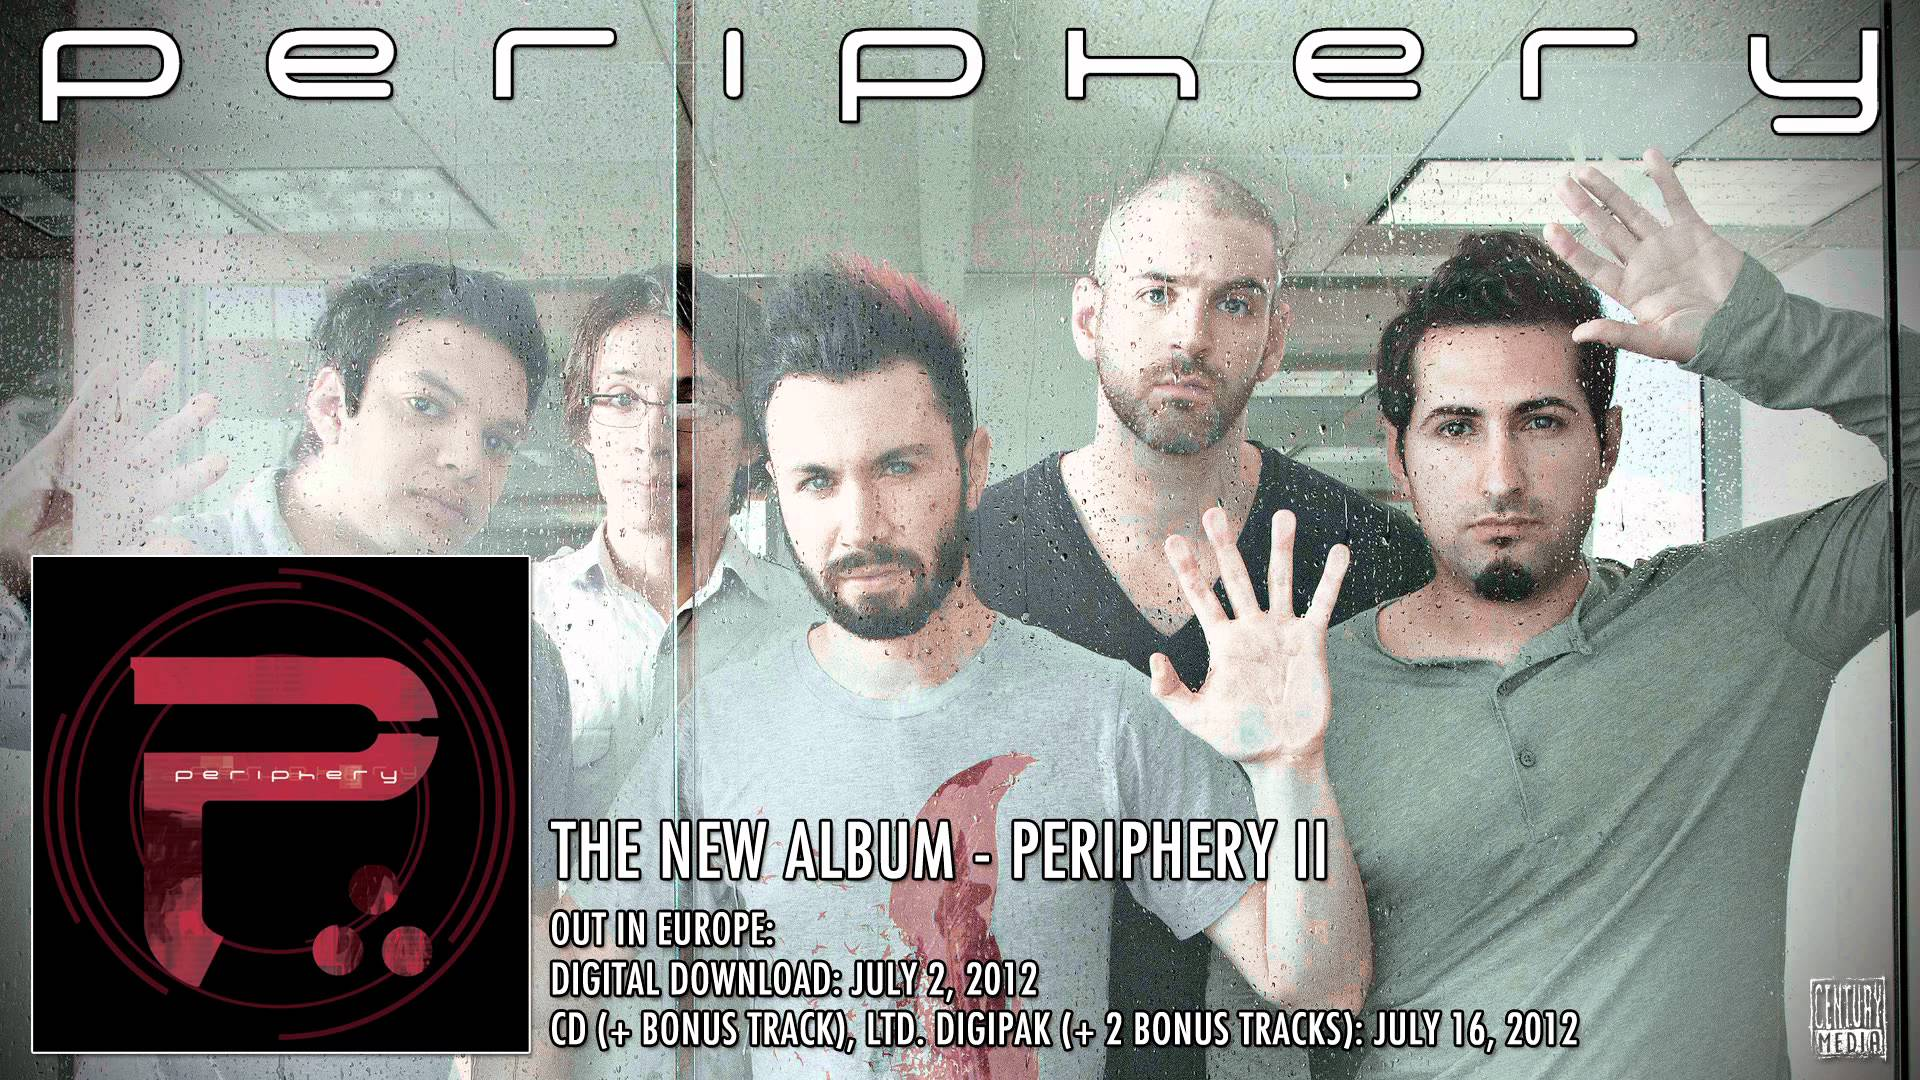 PERIPHERY - Scarlet (OFFICIAL ALBUM TRACK)